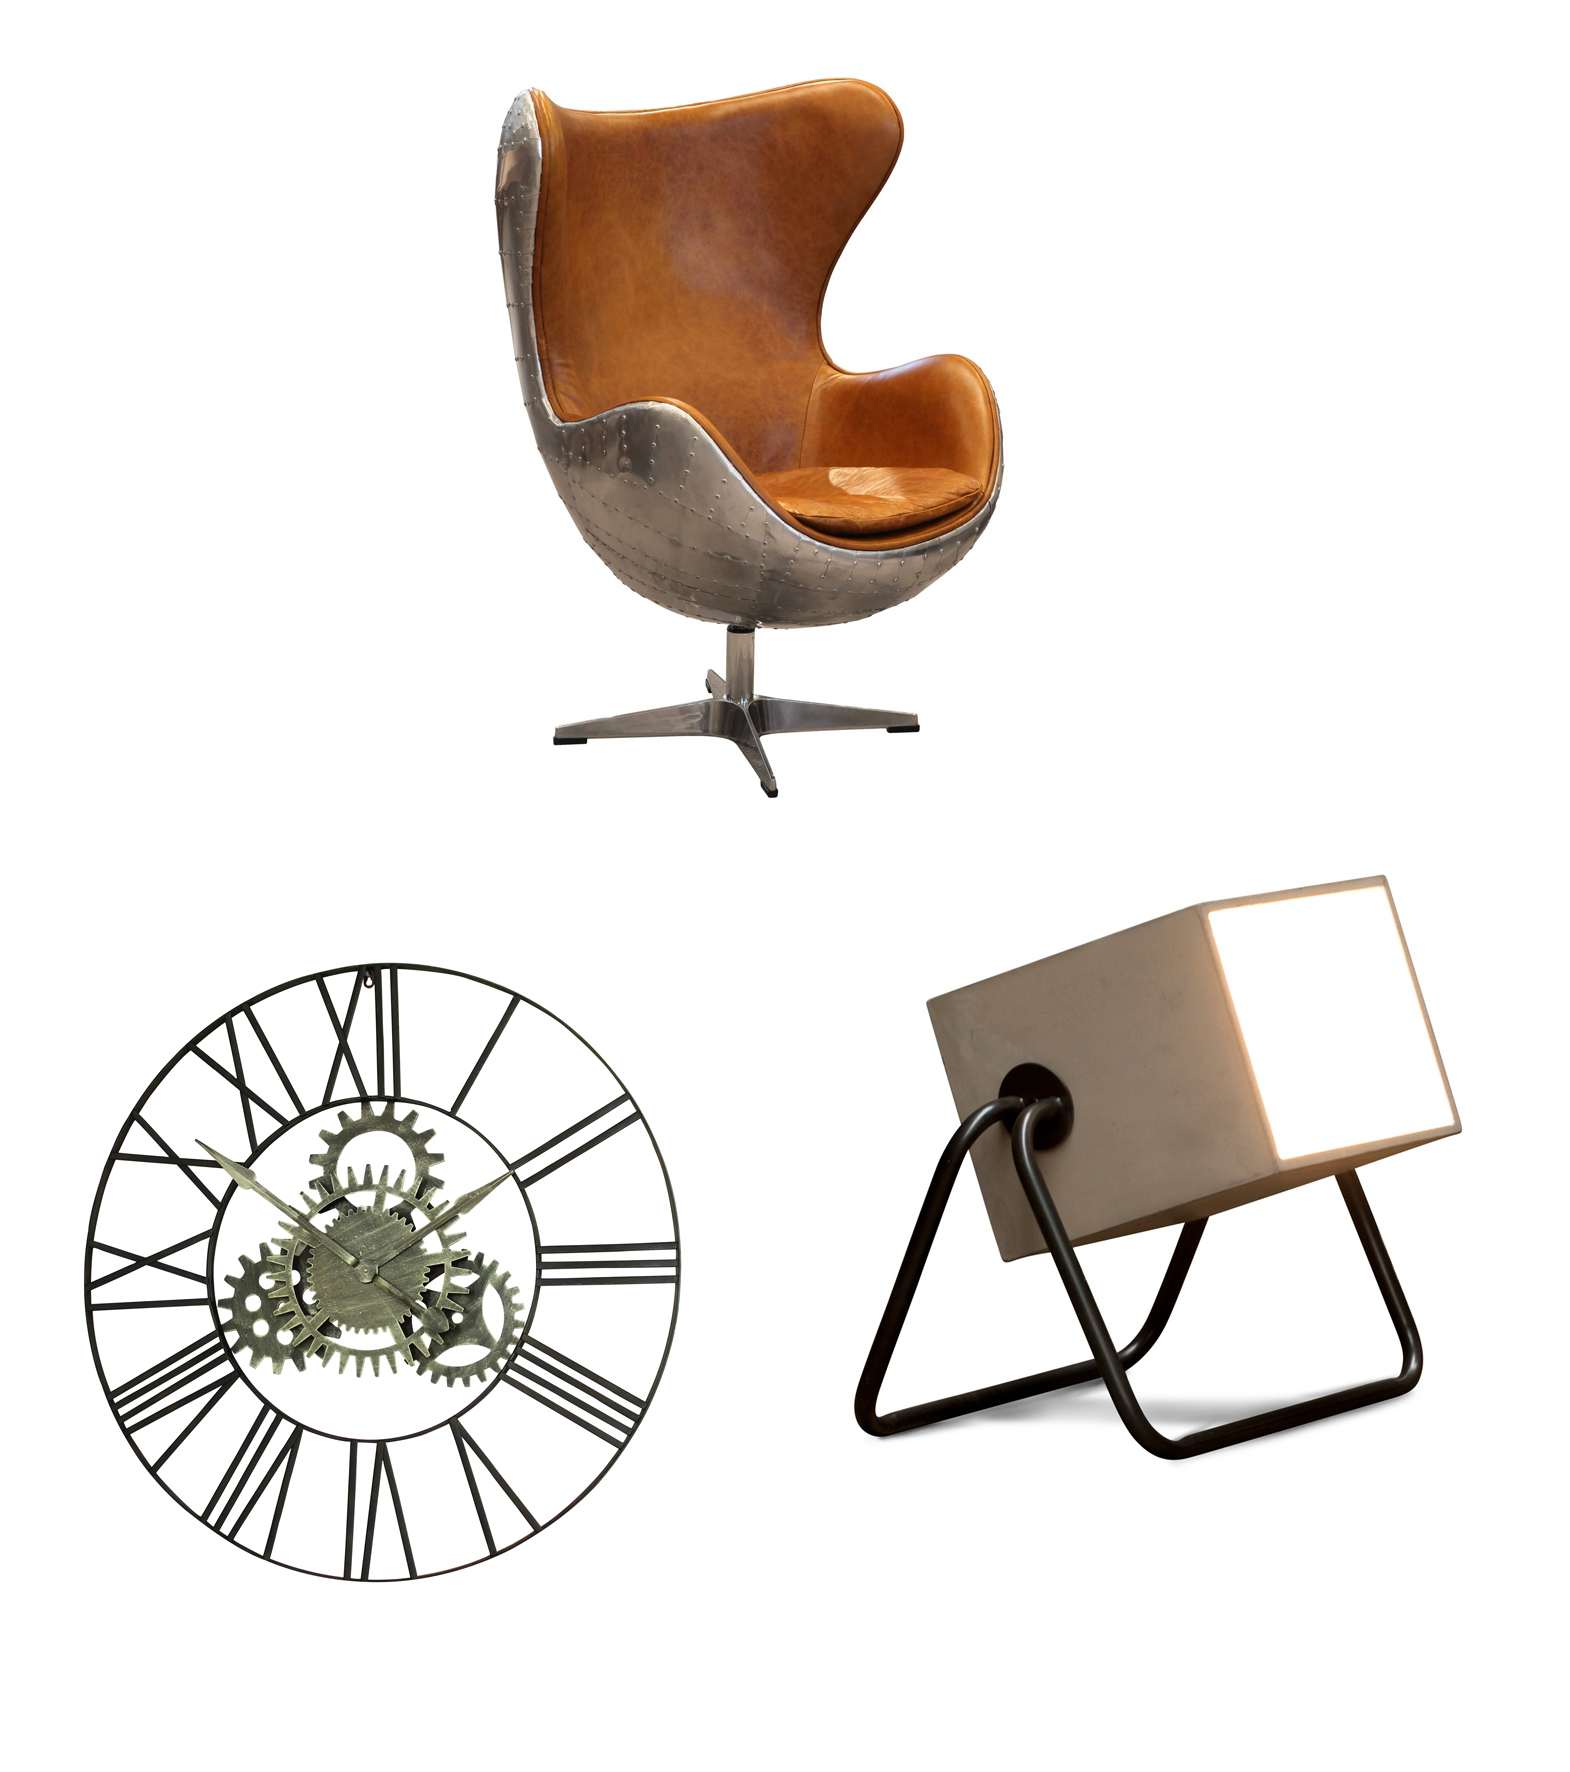 From top: Aviator Keeler Wing Desk Chair, Modish Living; Concrete Box Lighting, PIB; Silver Cog Skeleton Wall Clock, Windsor Browne